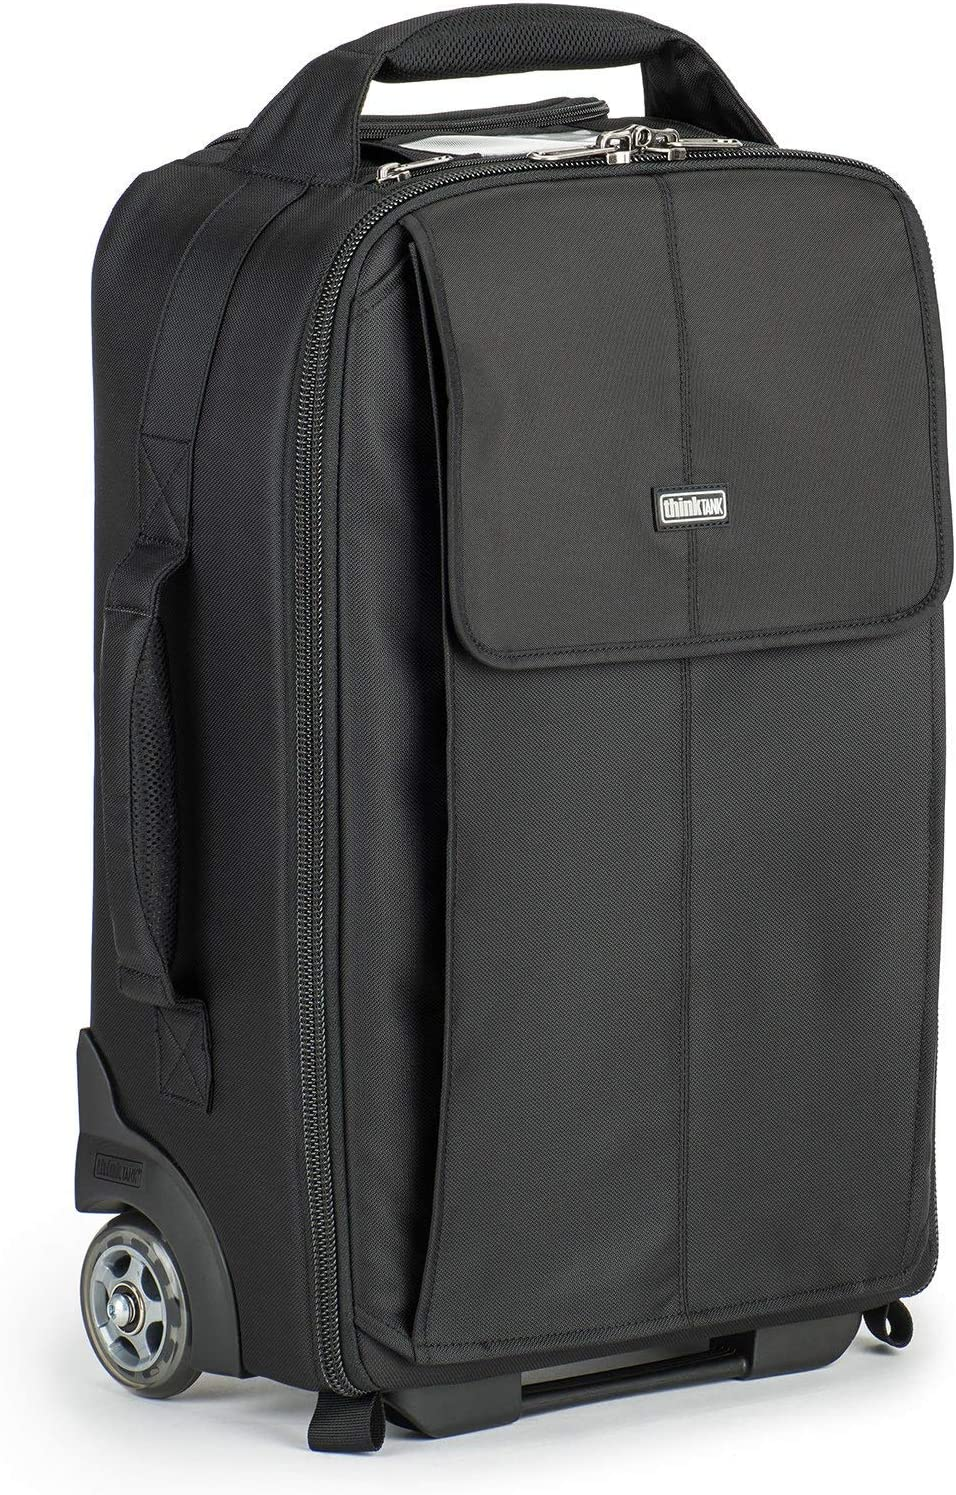 Think Tank Airport Advantage Troley Suitcase - Black